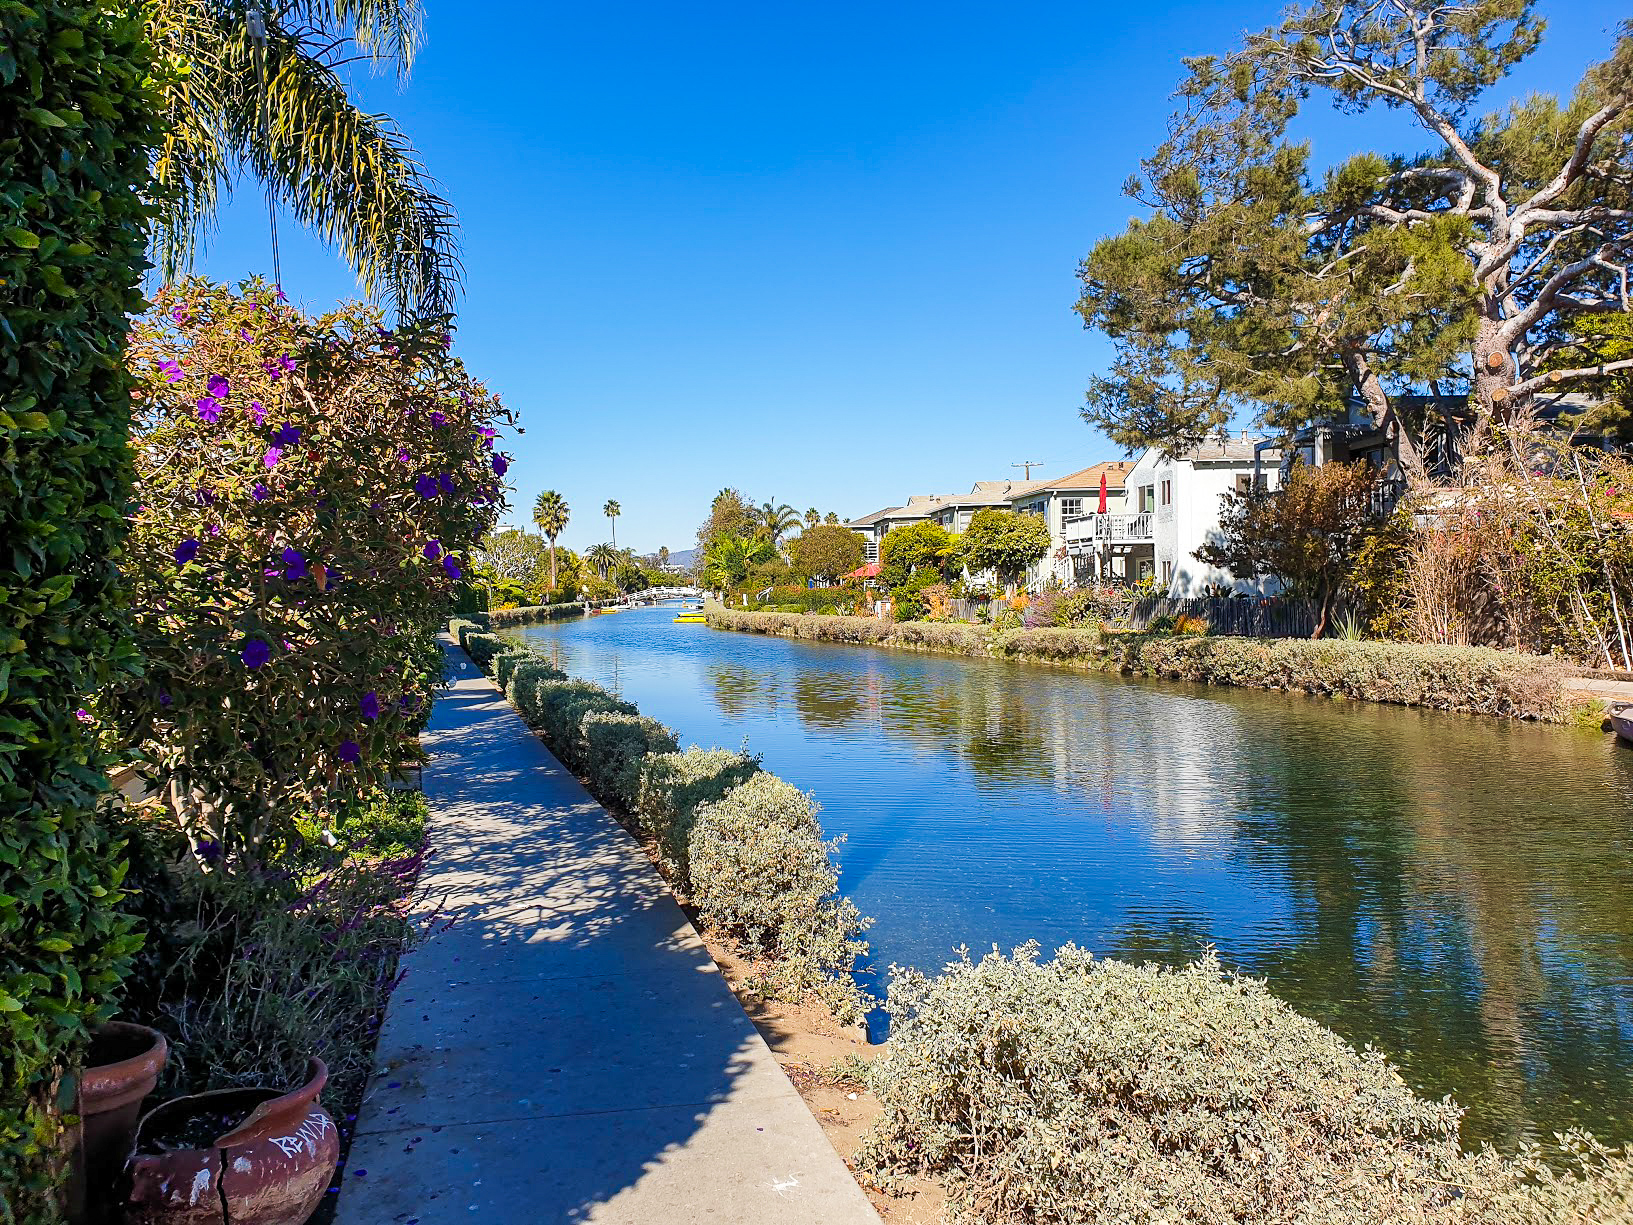 Canal in Venice, Los Angeles